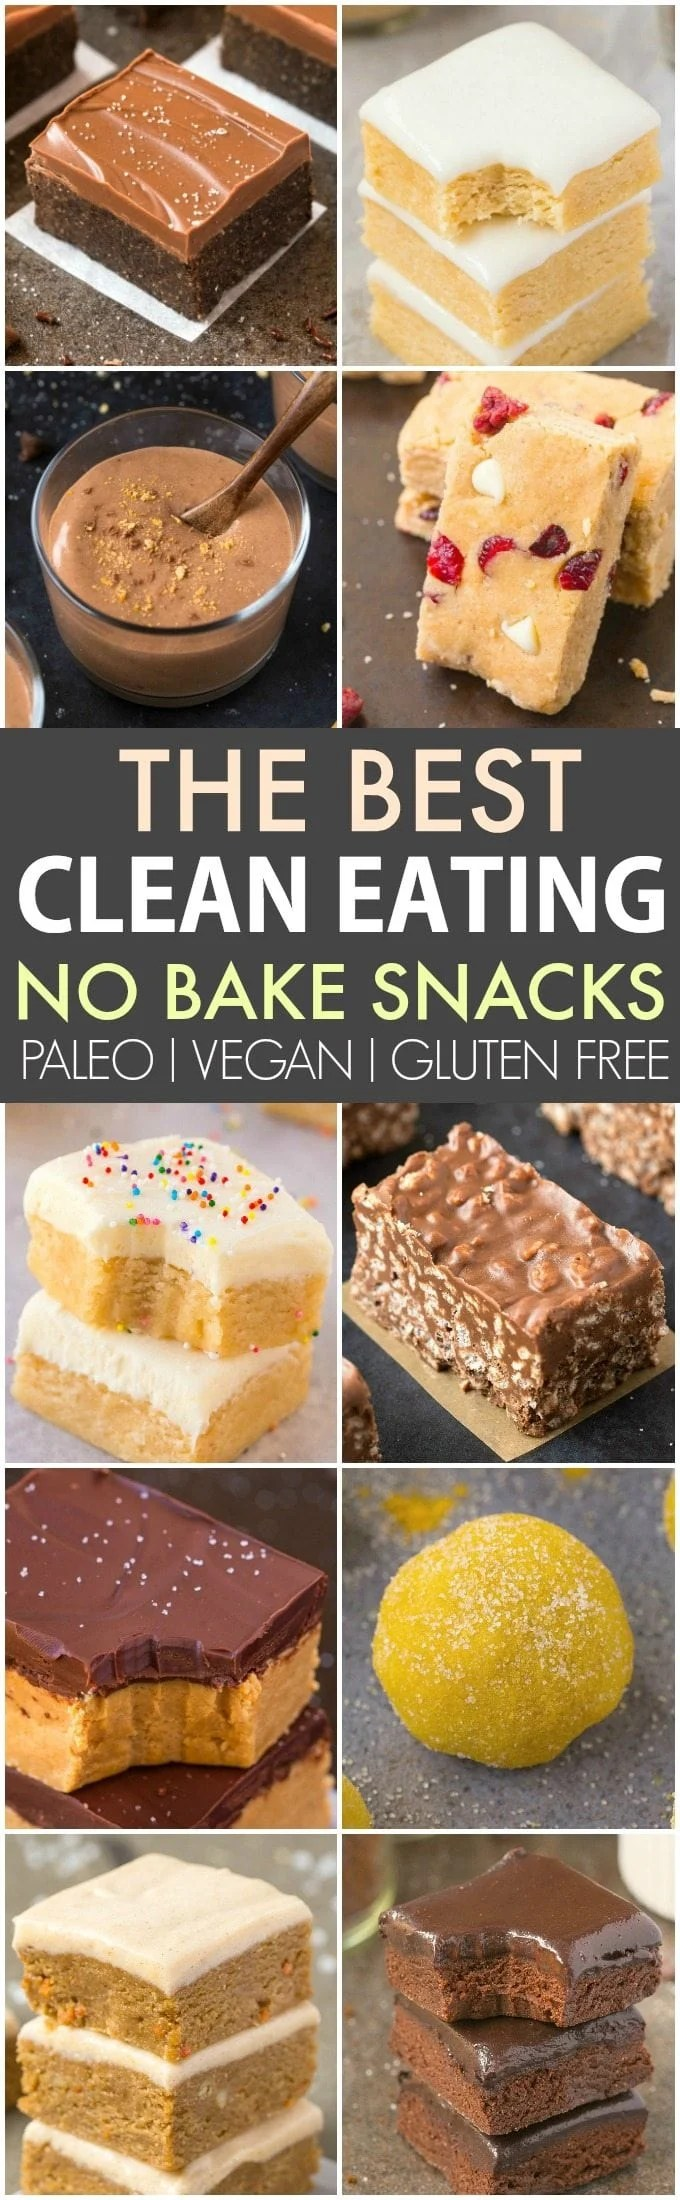 Clean Eating Healthy No Bake Snacks (V, GF, P, DF)- Quick, easy and healthy no bake snacks which take minutes and are protein packed + sugar free! {vegan, gluten free, paleo recipe}- thebigmansworld.com